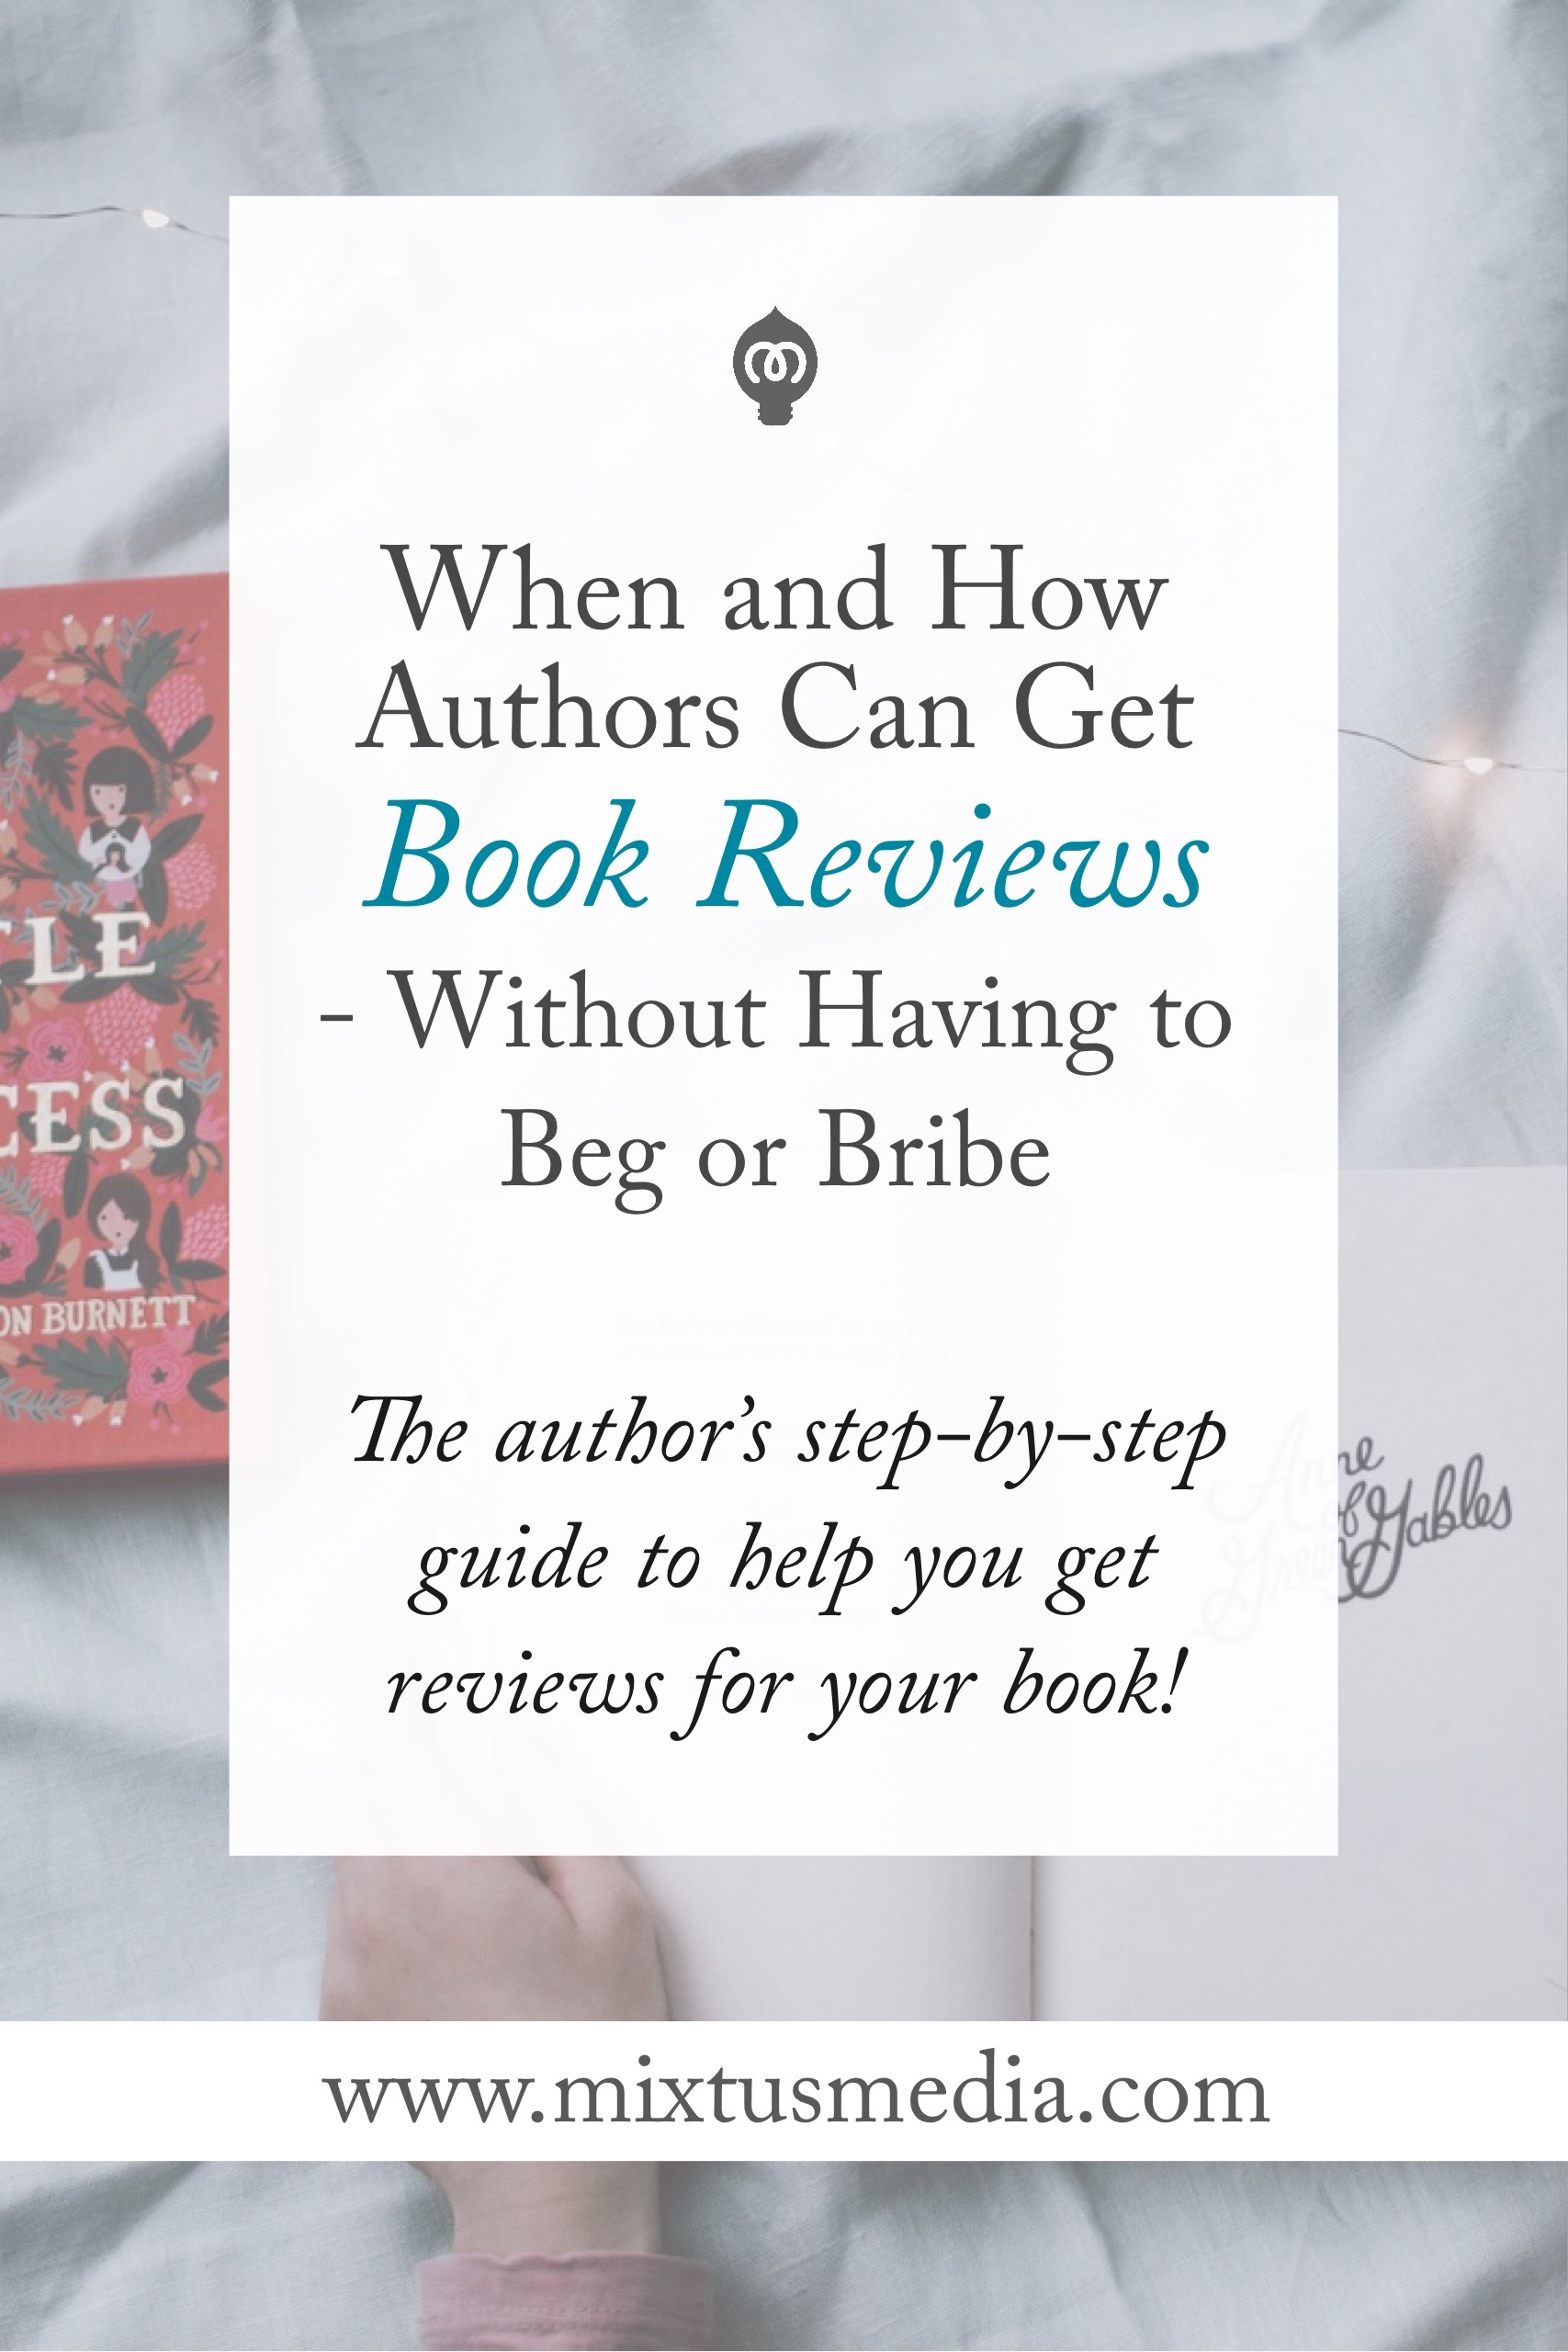 The author's step-by-step guide to help you get reviews for your book!